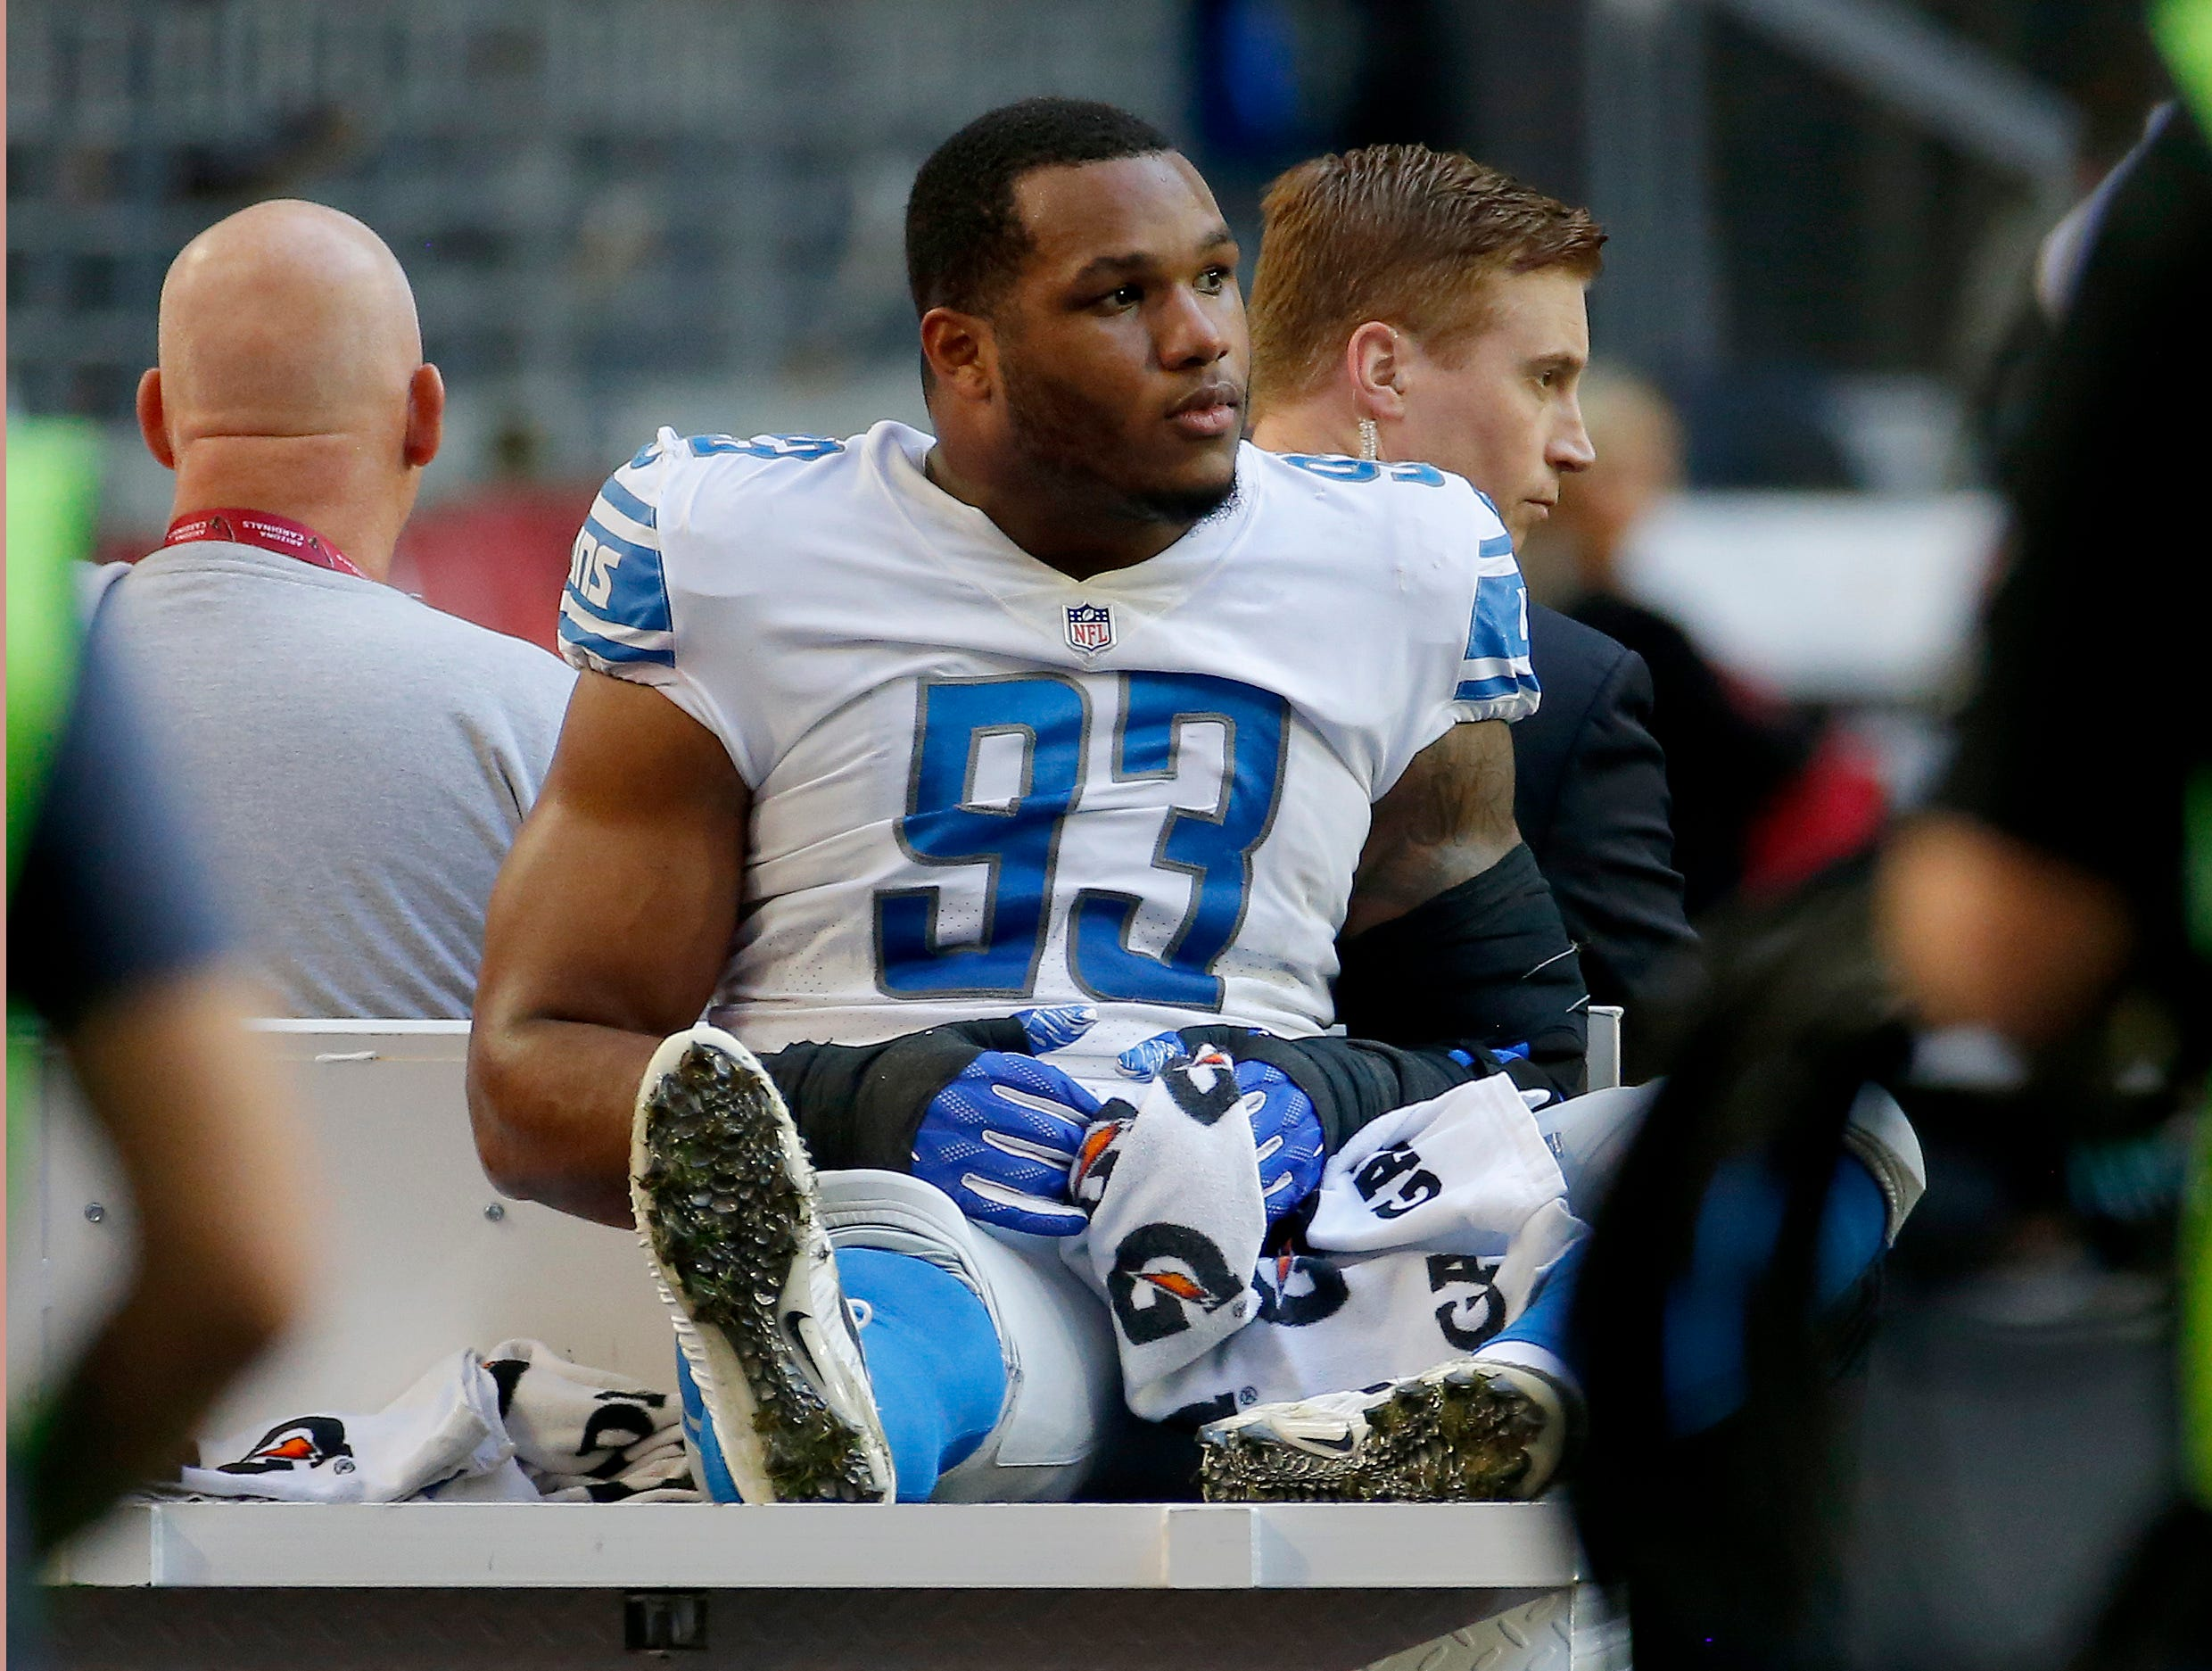 Detroit Lions defensive end Da'Shawn Hand (93) leaves the field after an injury against the Arizona Cardinals during the first half.